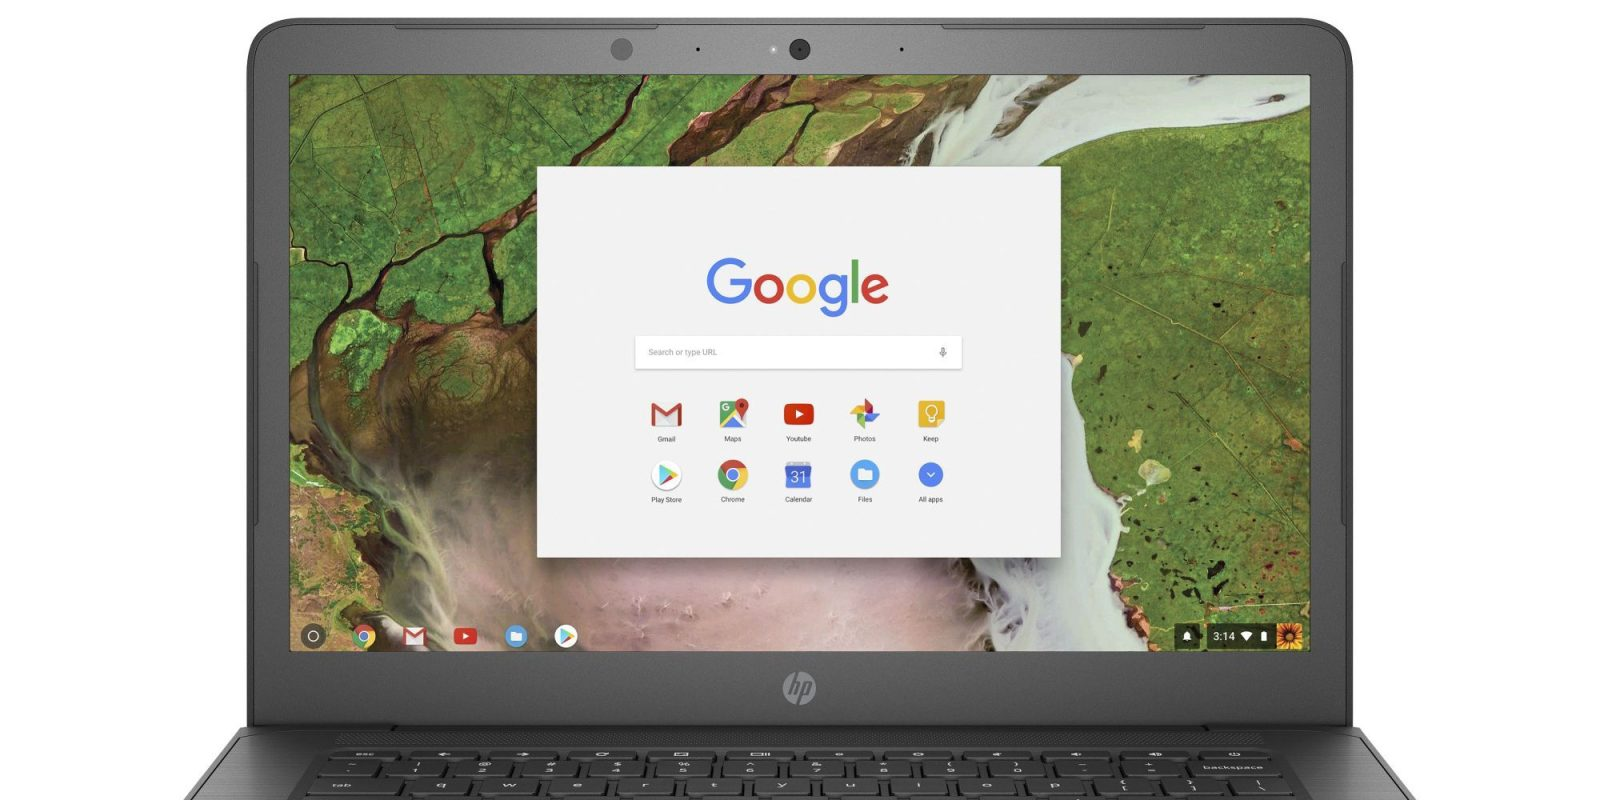 HP Chromebook 14 to be first AMD Chrome OS device - 9to5Google